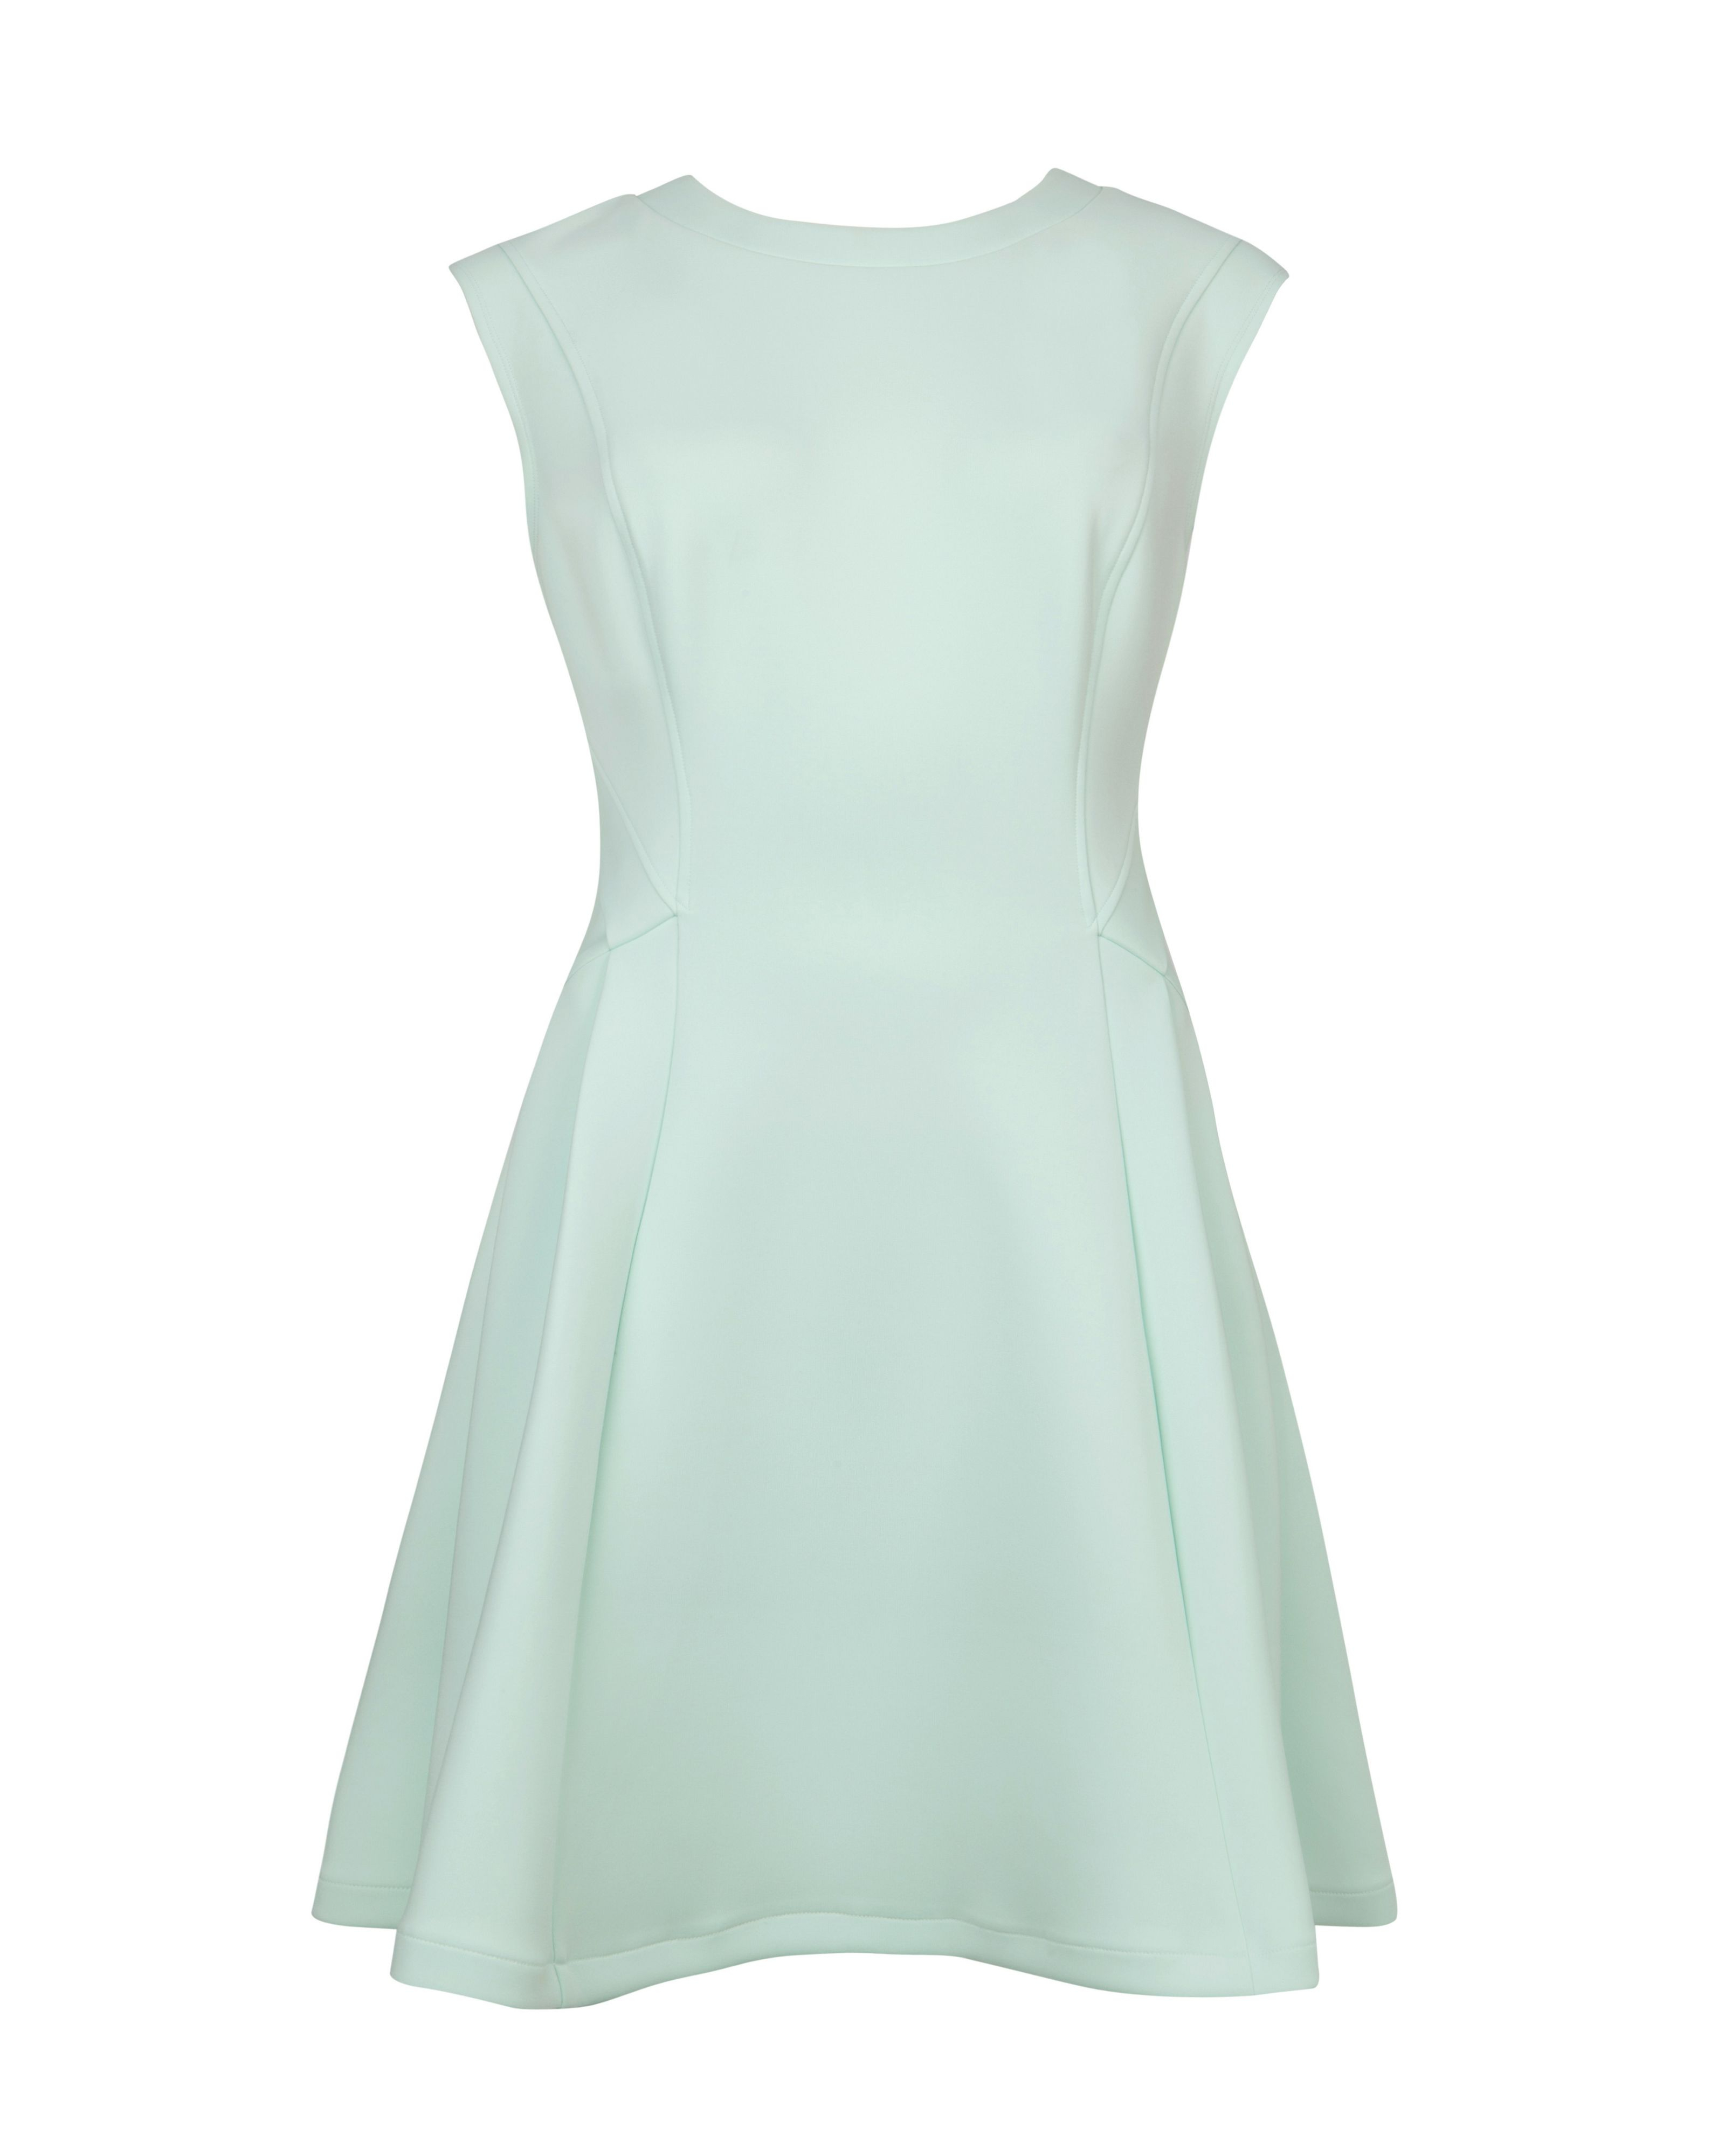 Lyst - Ted Baker Nistee Skater Dress in Green